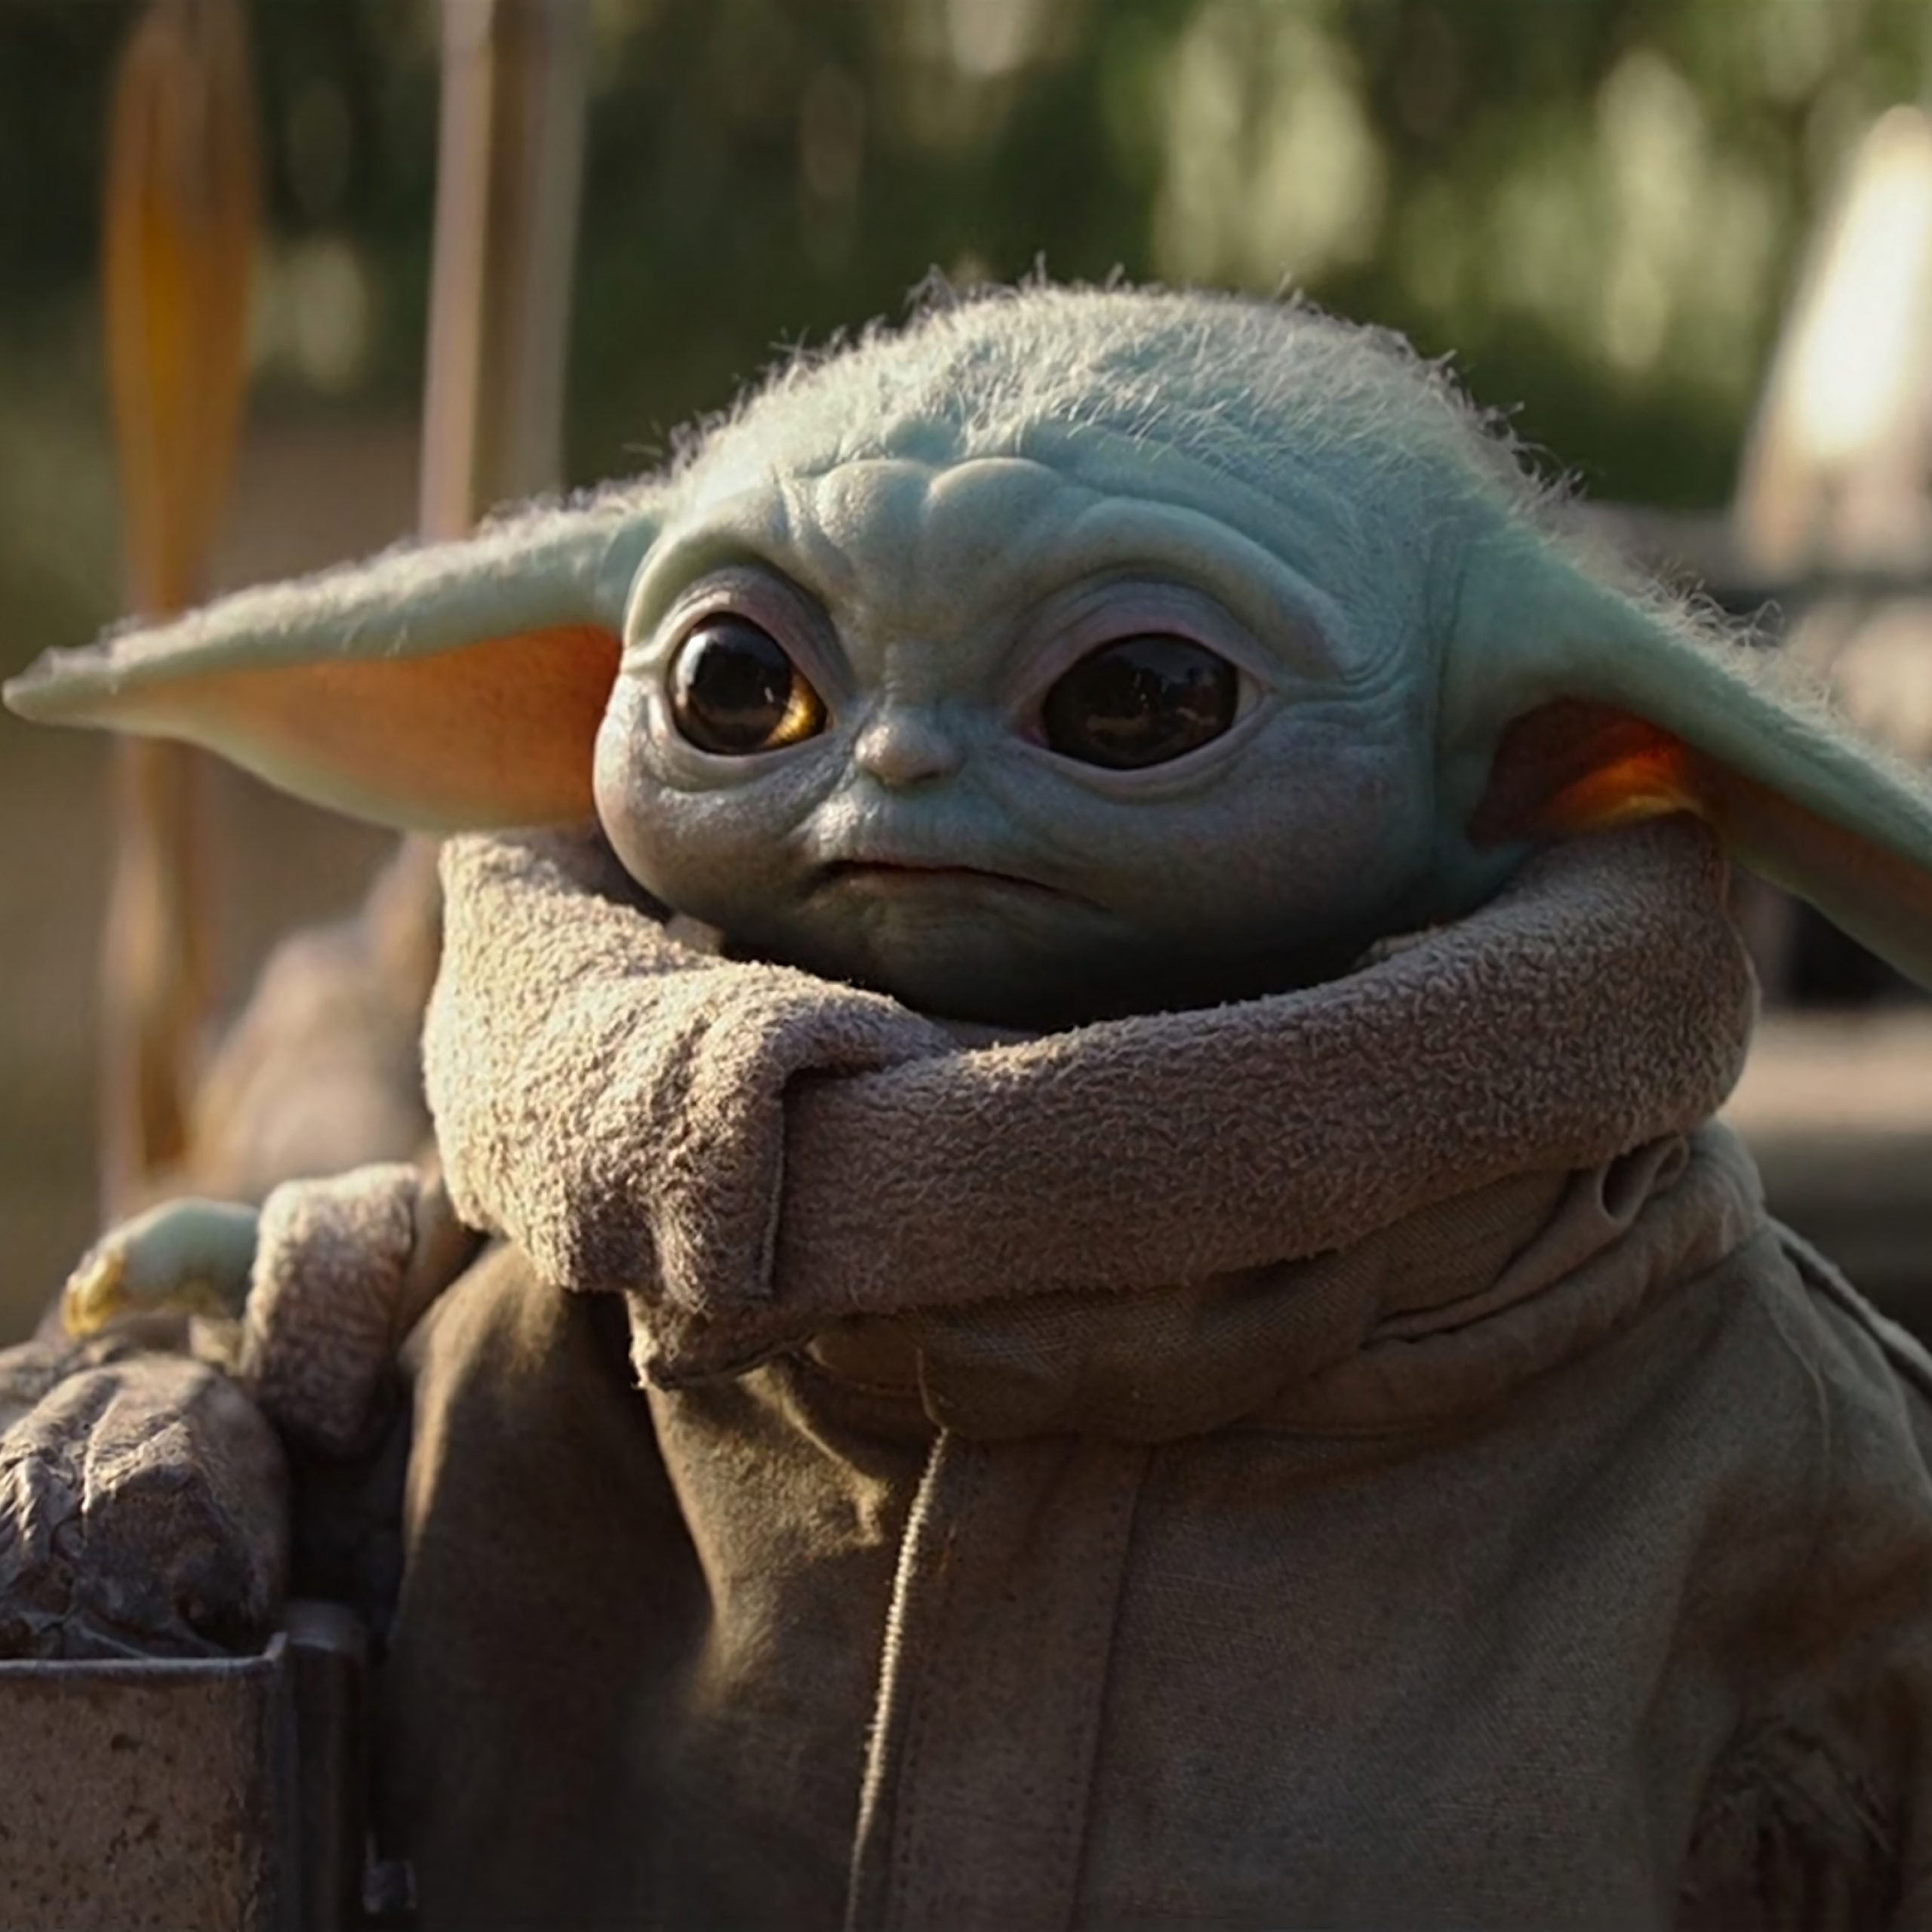 Baby Yoda 2927334 Hd Wallpaper Backgrounds Download